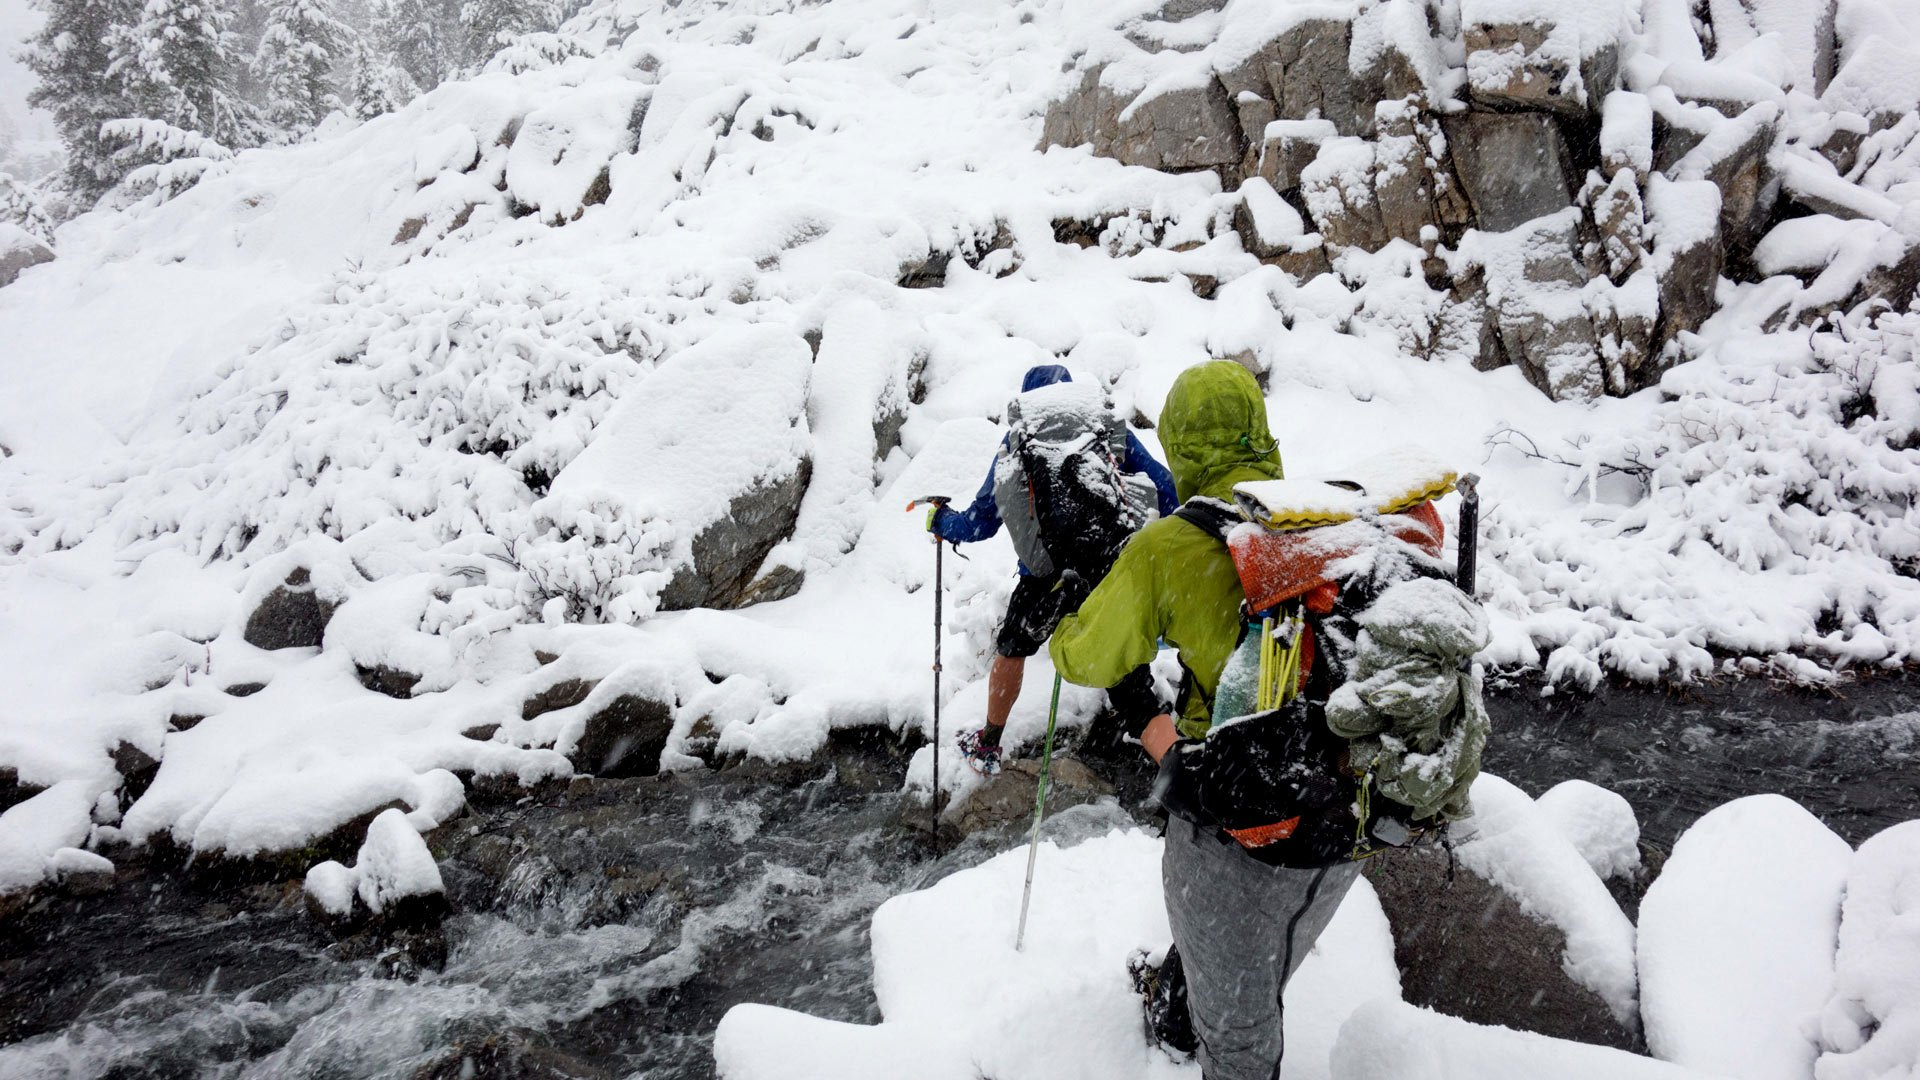 Crossing a creek in a snow storm